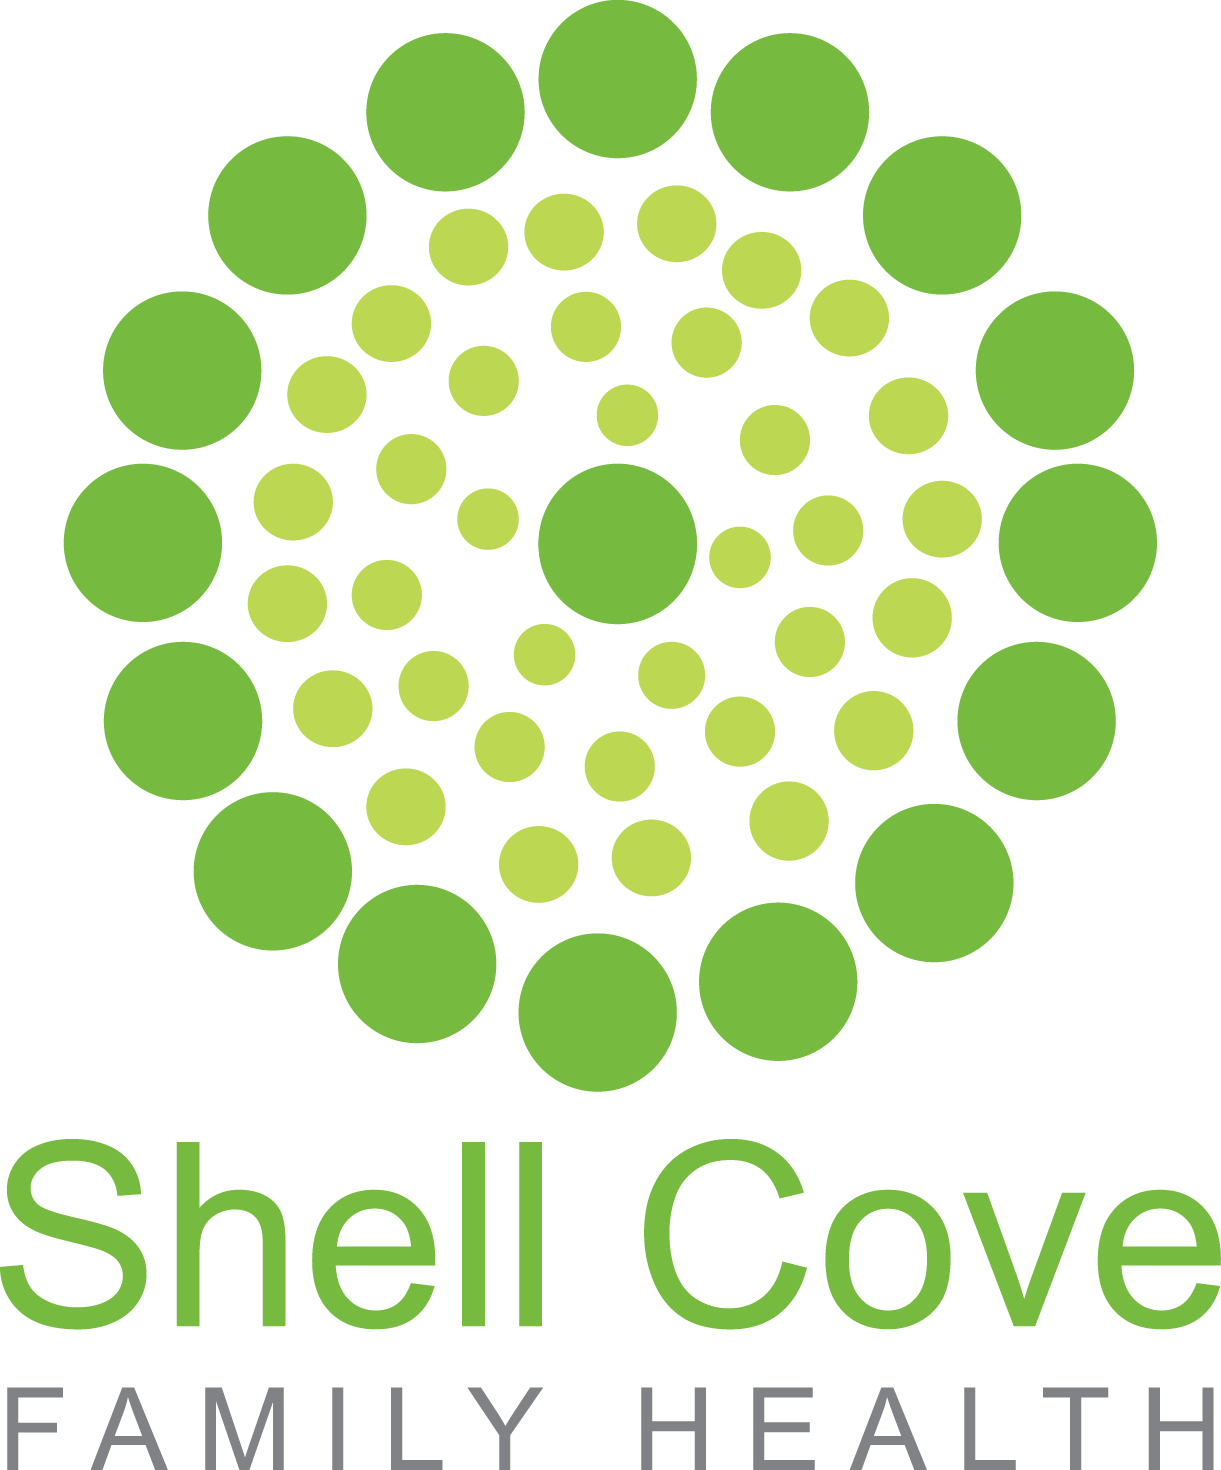 Shell Cove Family Health